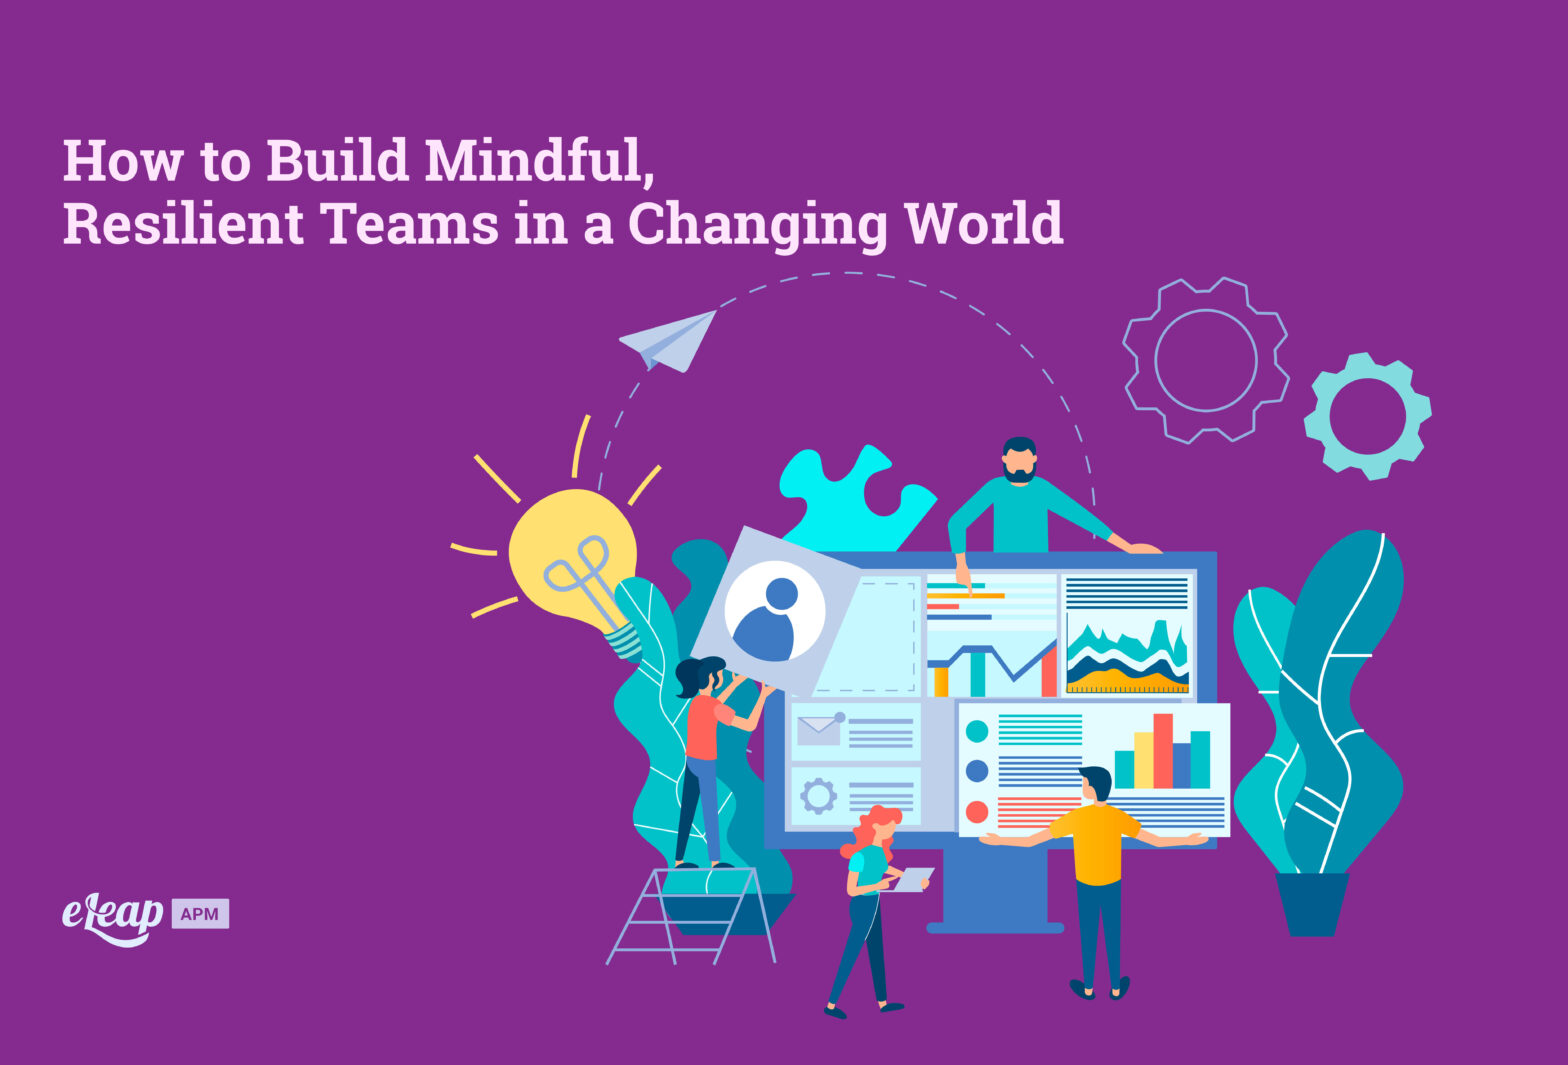 How to Build Mindful, Resilient Teams in a Changing World